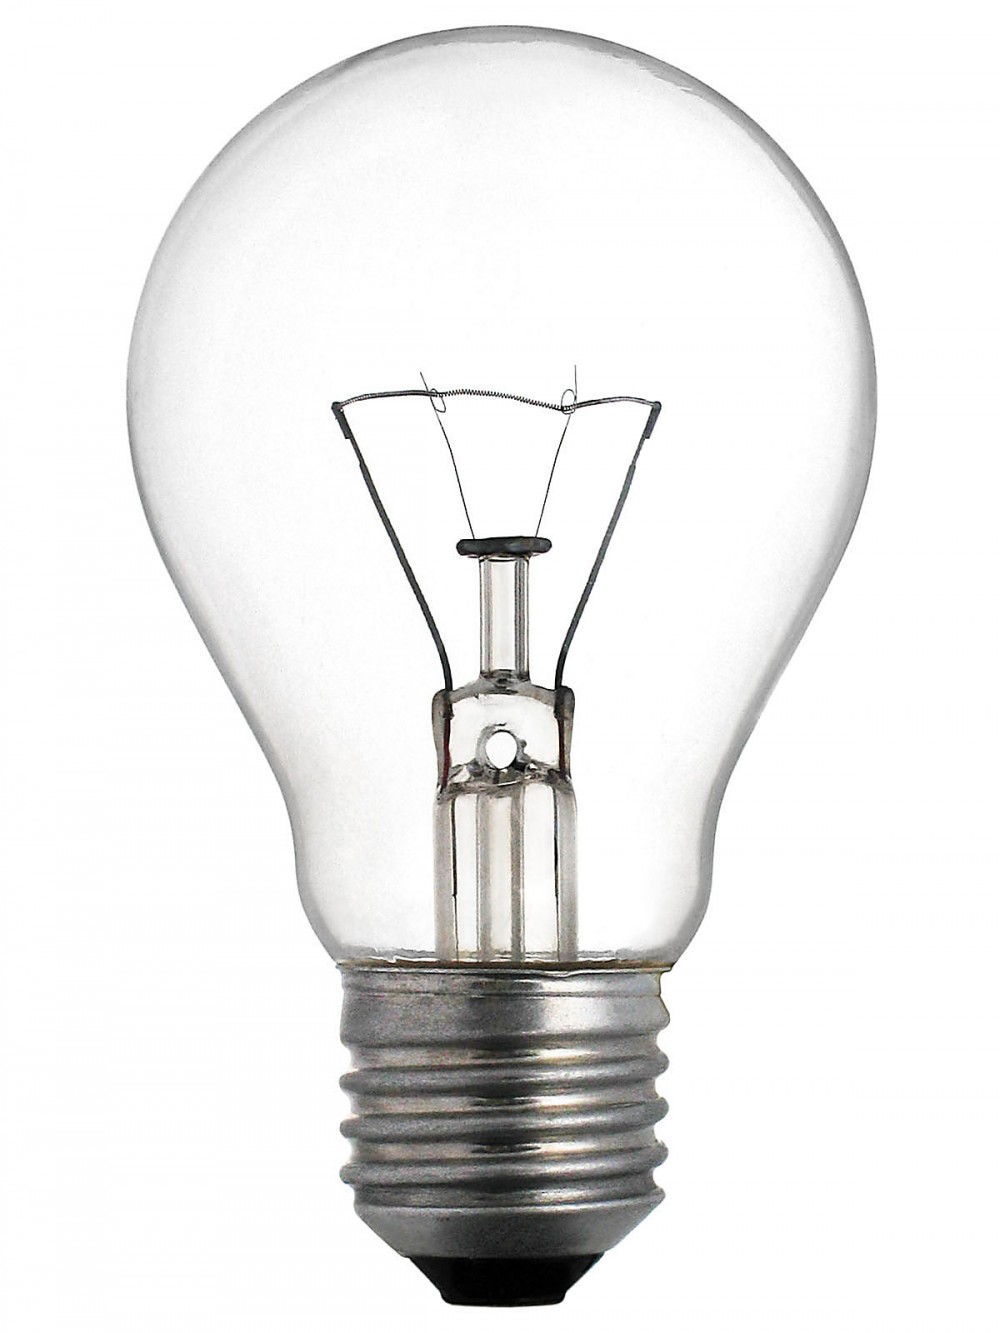 lighting, Lighting with LEDs vs. Incandescent